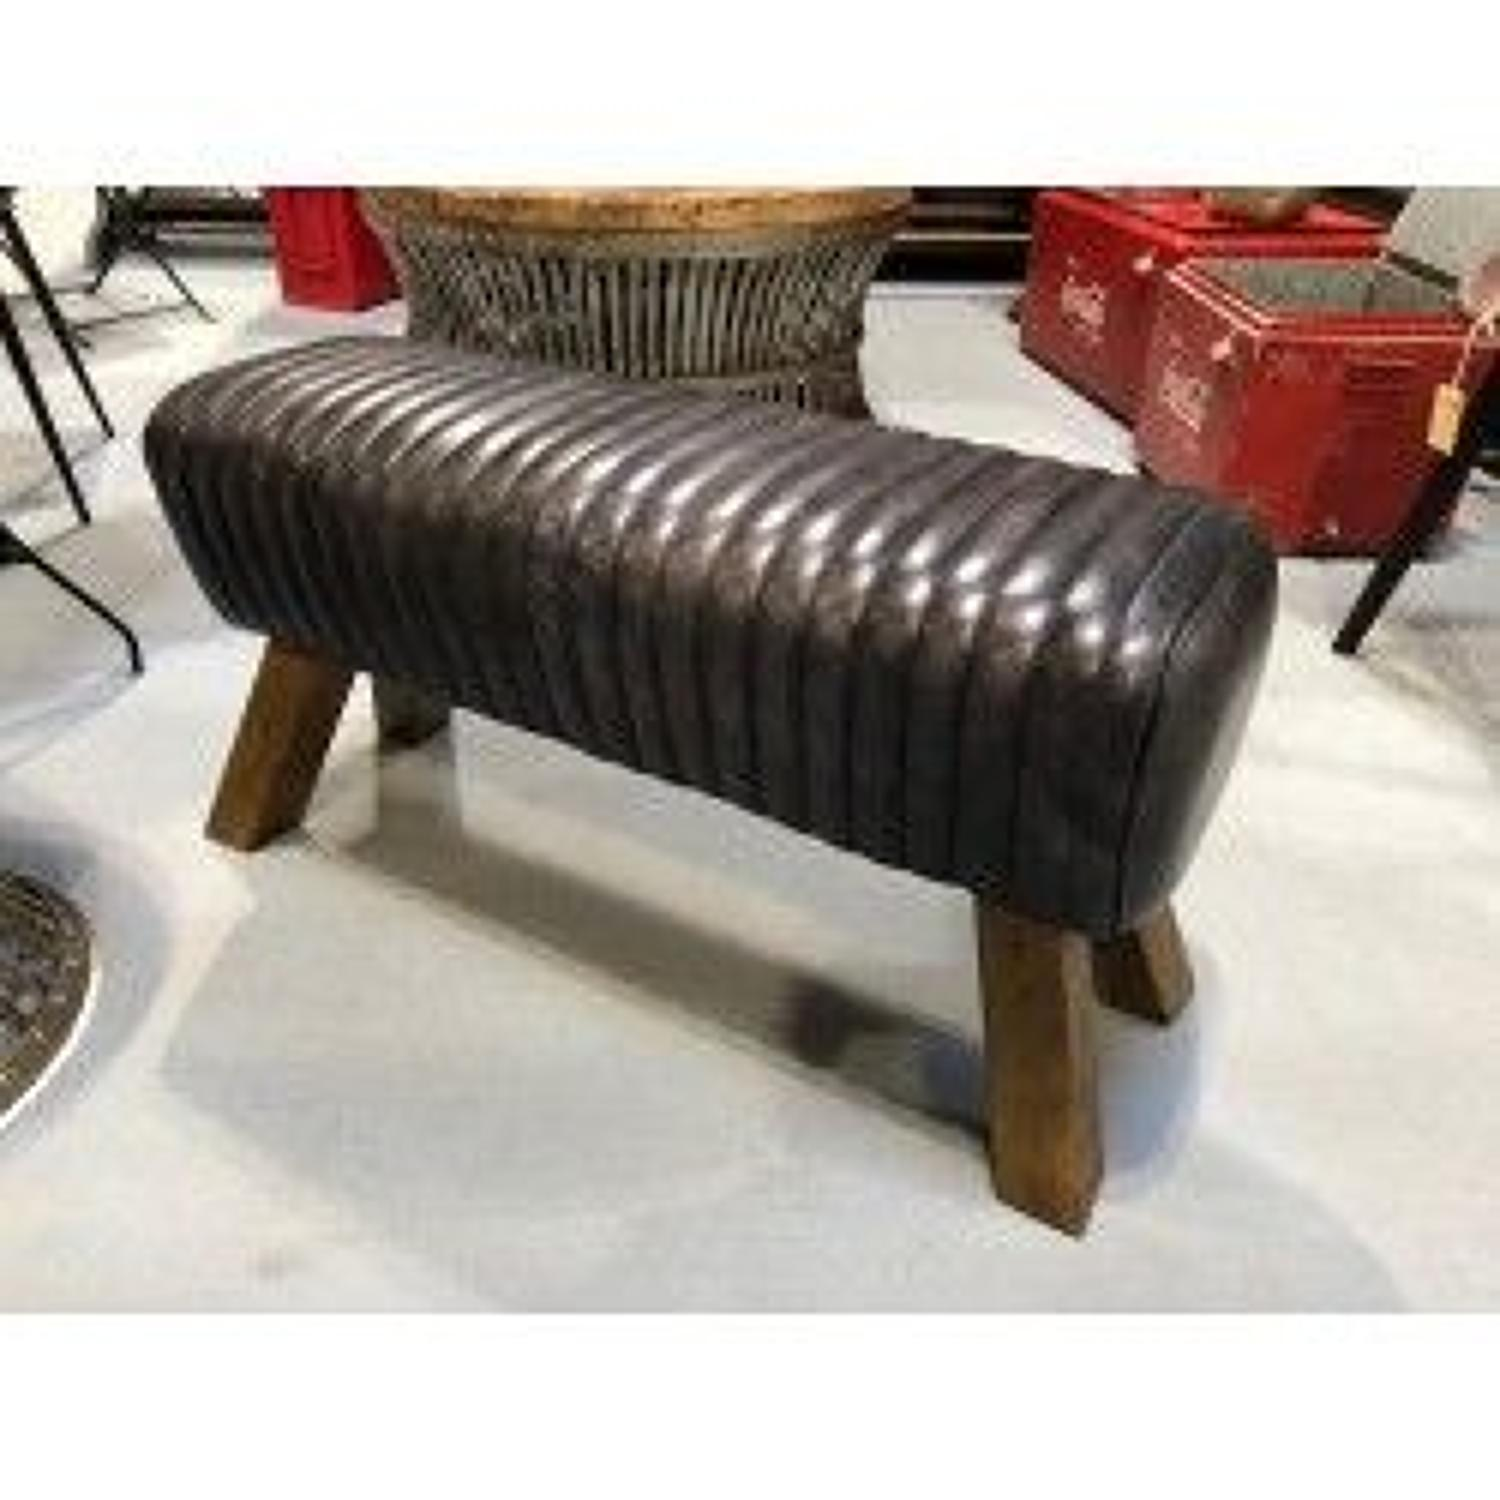 Black leather bench pommel horse style - Wooden feet